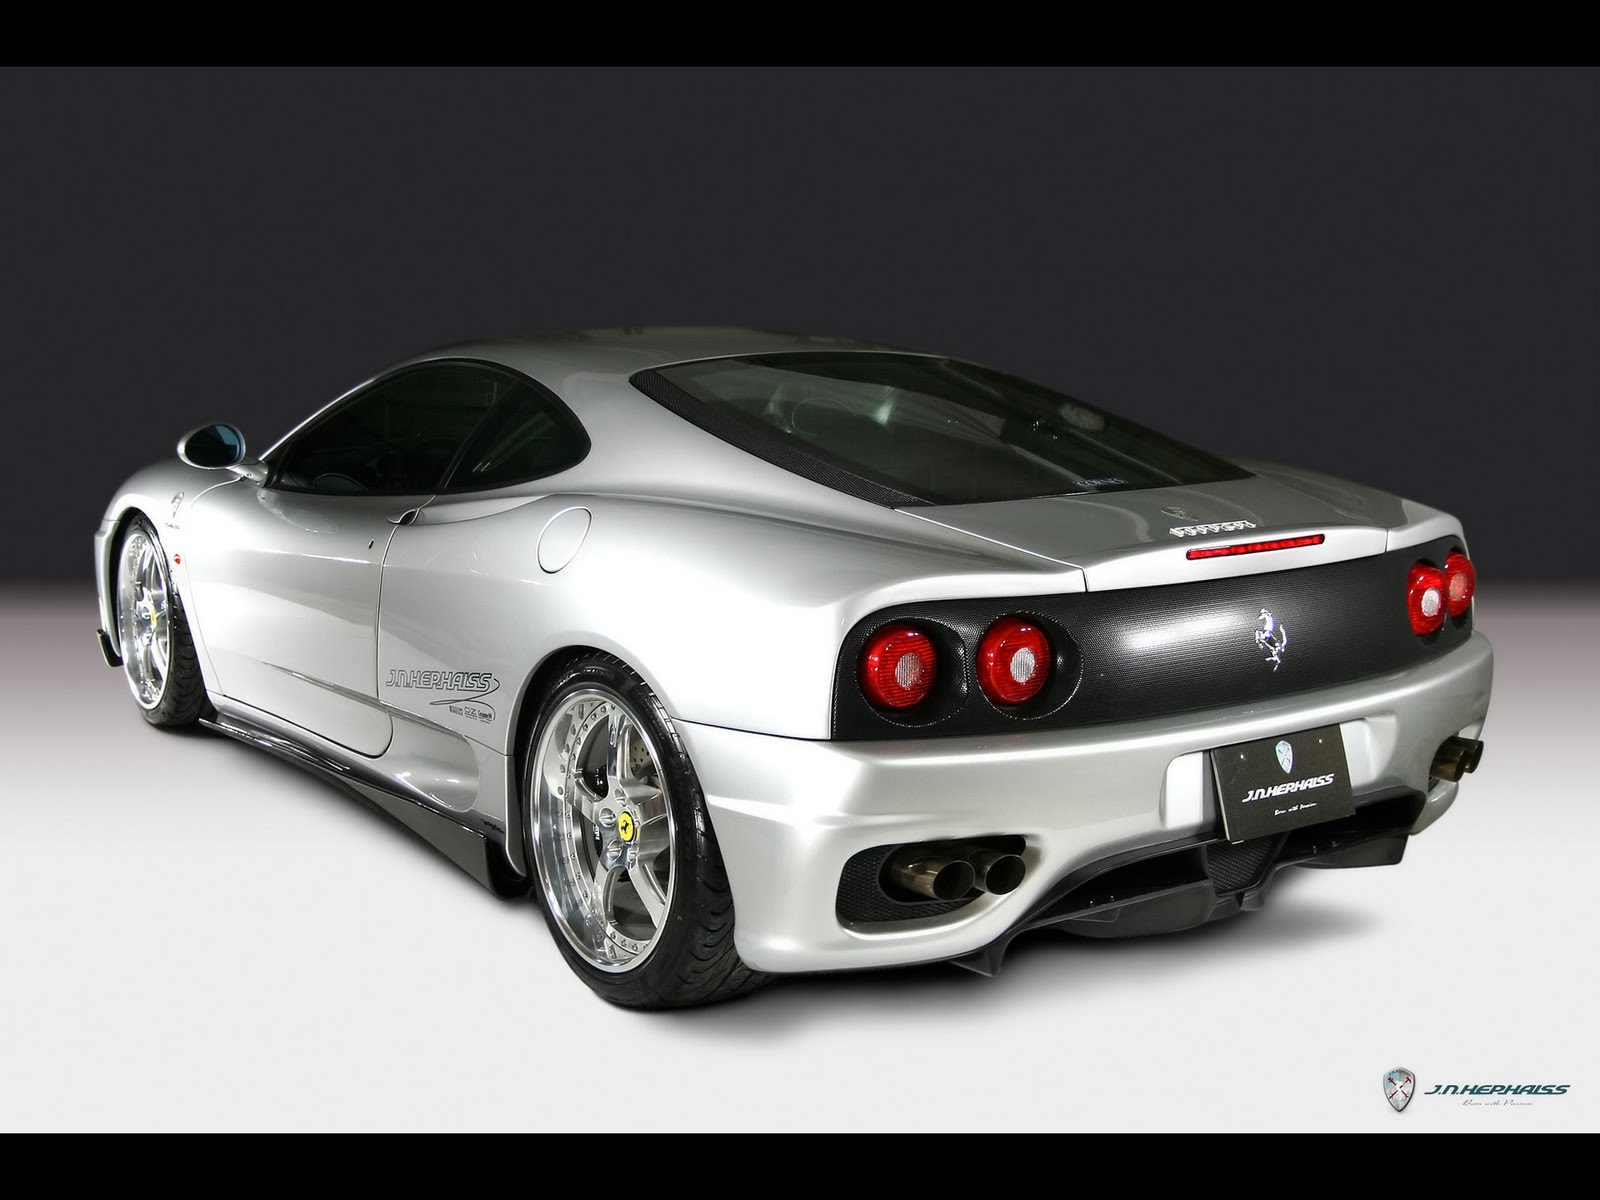 ferrari 360 modena jnh fast speedy cars. Black Bedroom Furniture Sets. Home Design Ideas